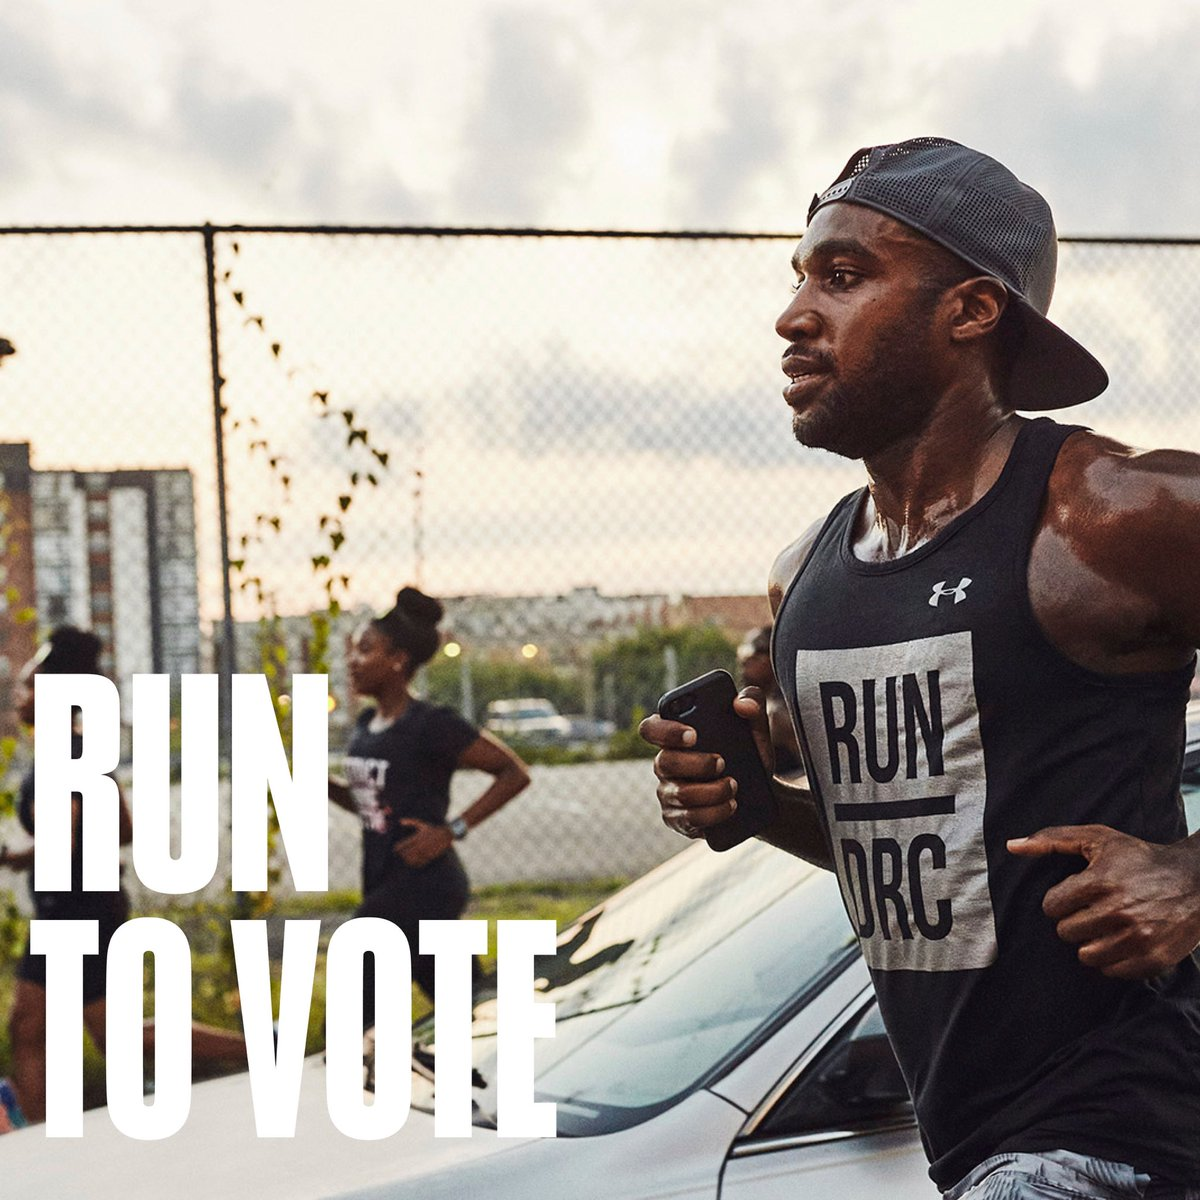 Democracy is the ultimate team sport, which is why this election season we want you to Get Registered and Go Vote. Go to https://t.co/dnGSvnN2Uz to see if you're registered to vote and get involved. #RunToVote https://t.co/FJLtCNsEHf